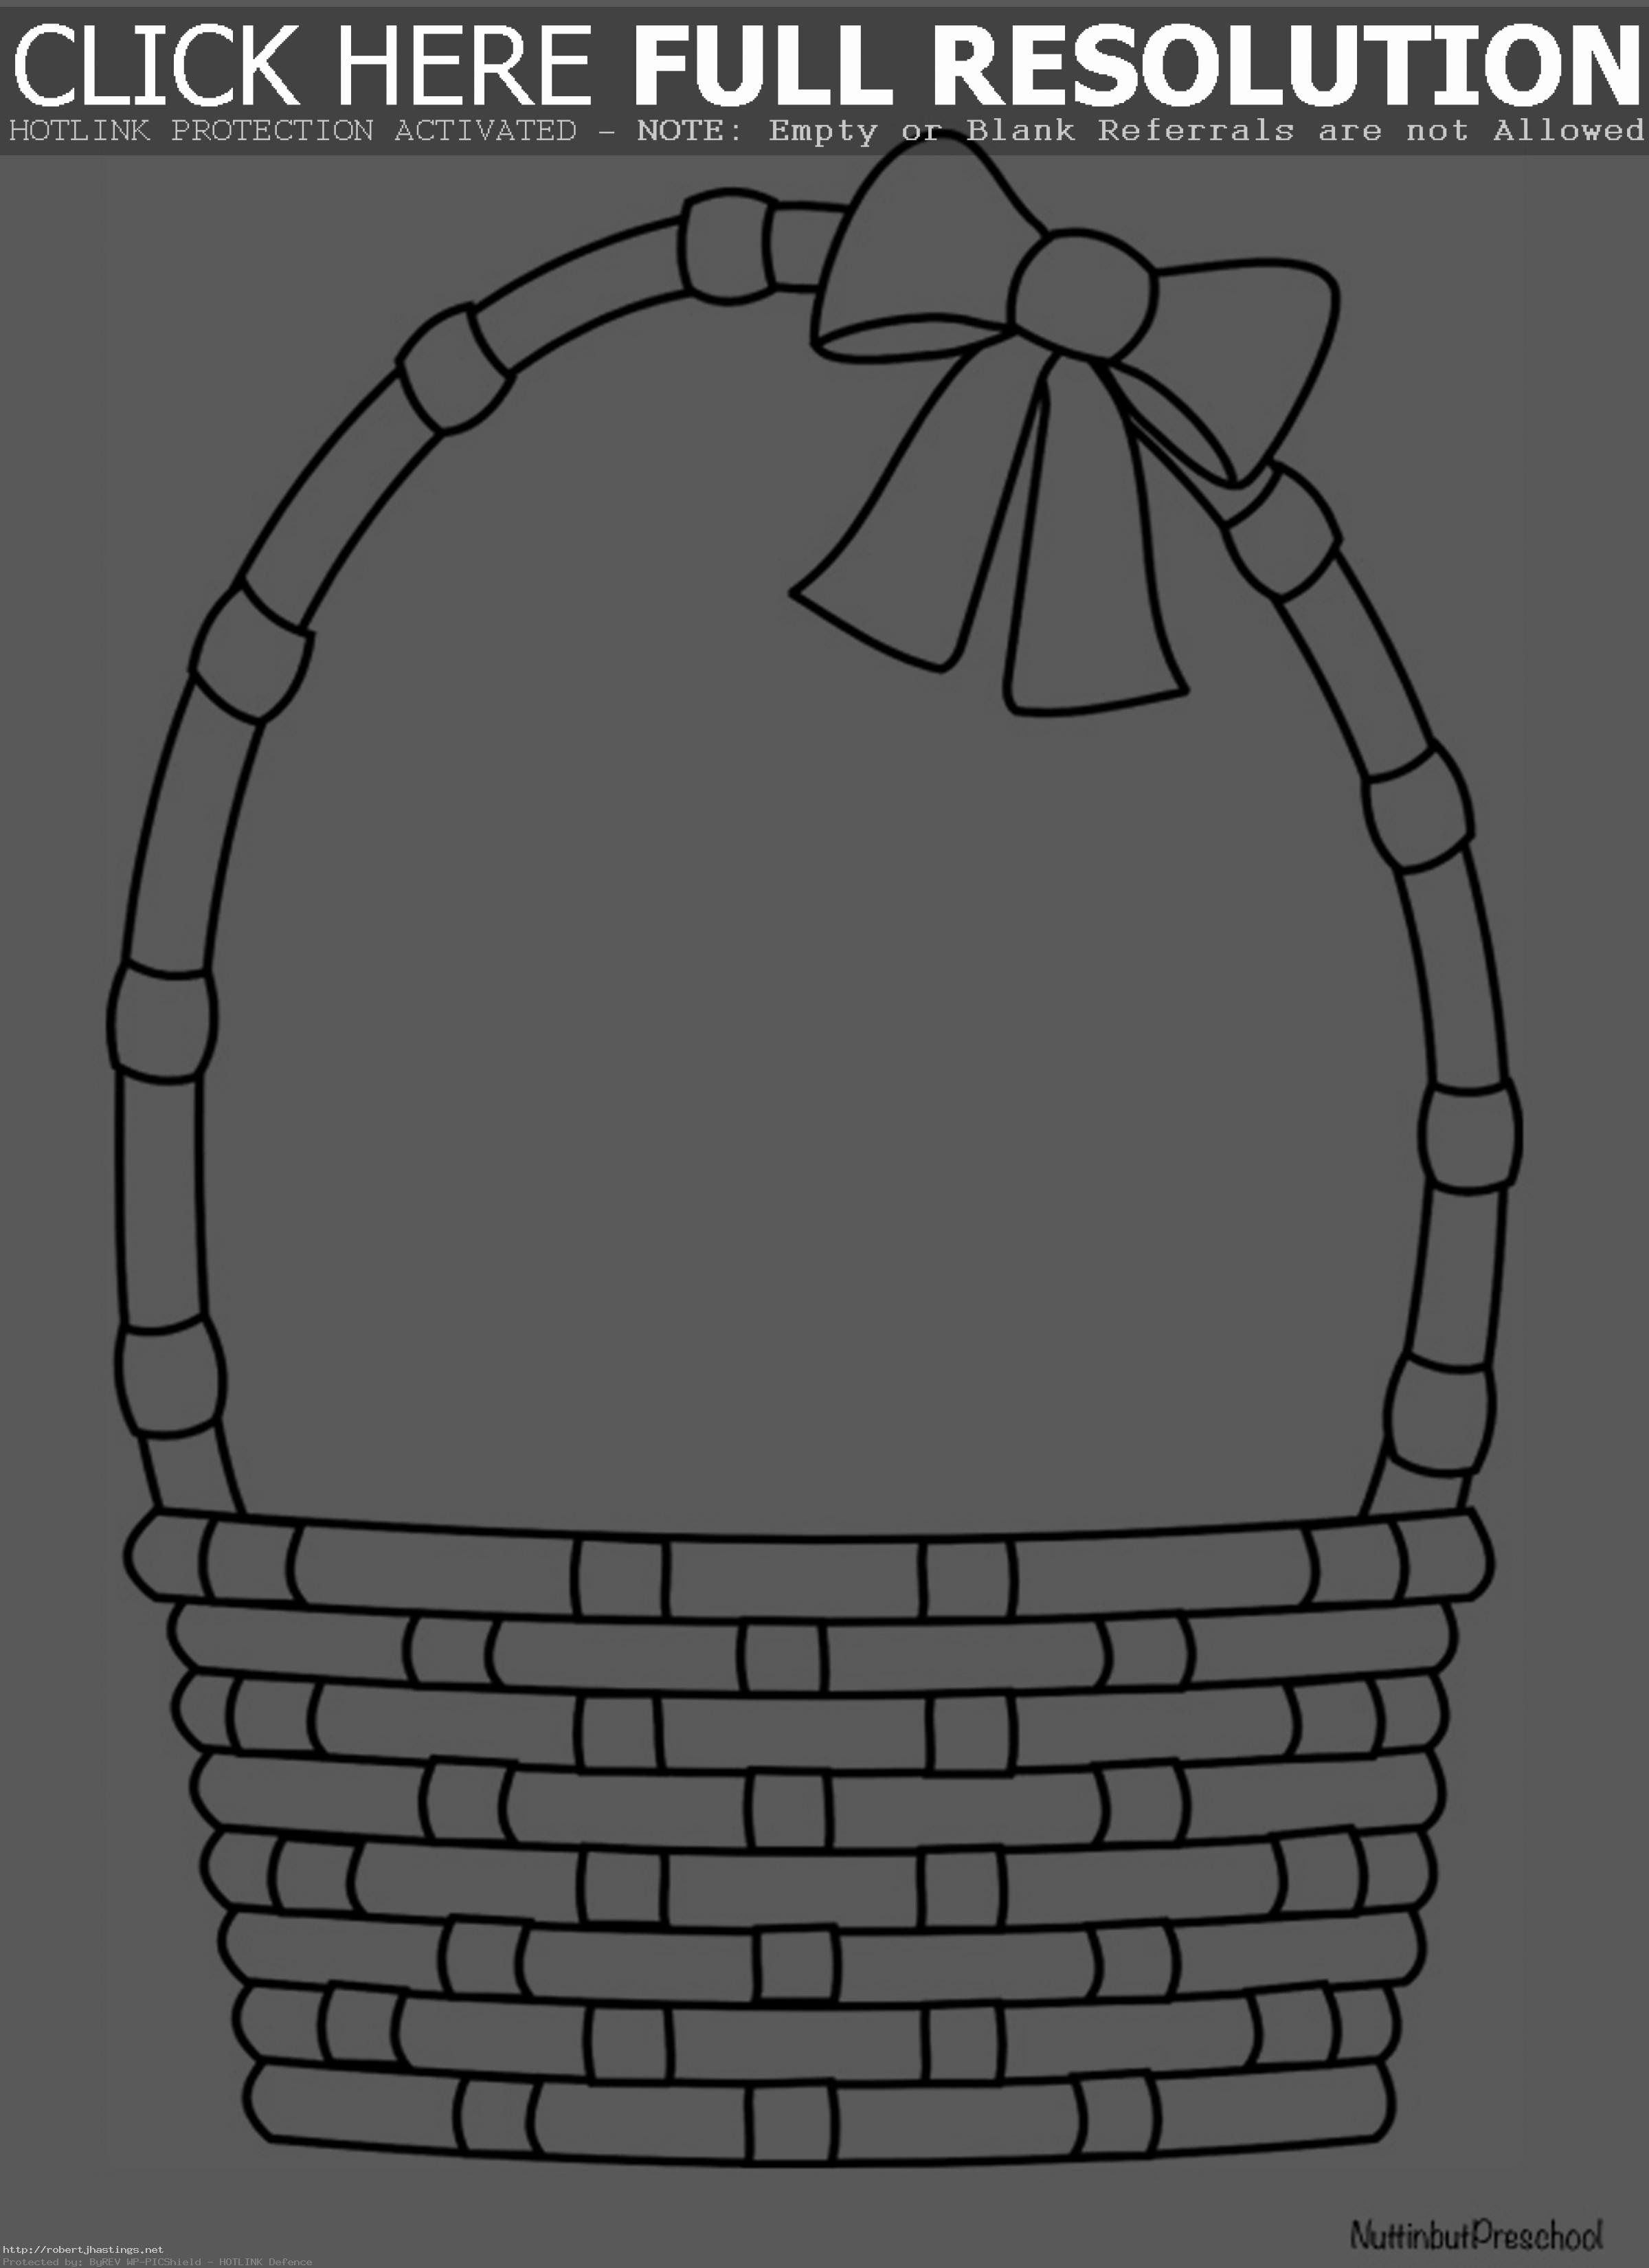 Empty Easter Basket Coloring Page Best Of Easter Basket Net Templates Hd Easter Empty Easter Baskets Easter Baskets Easter Coloring Pages